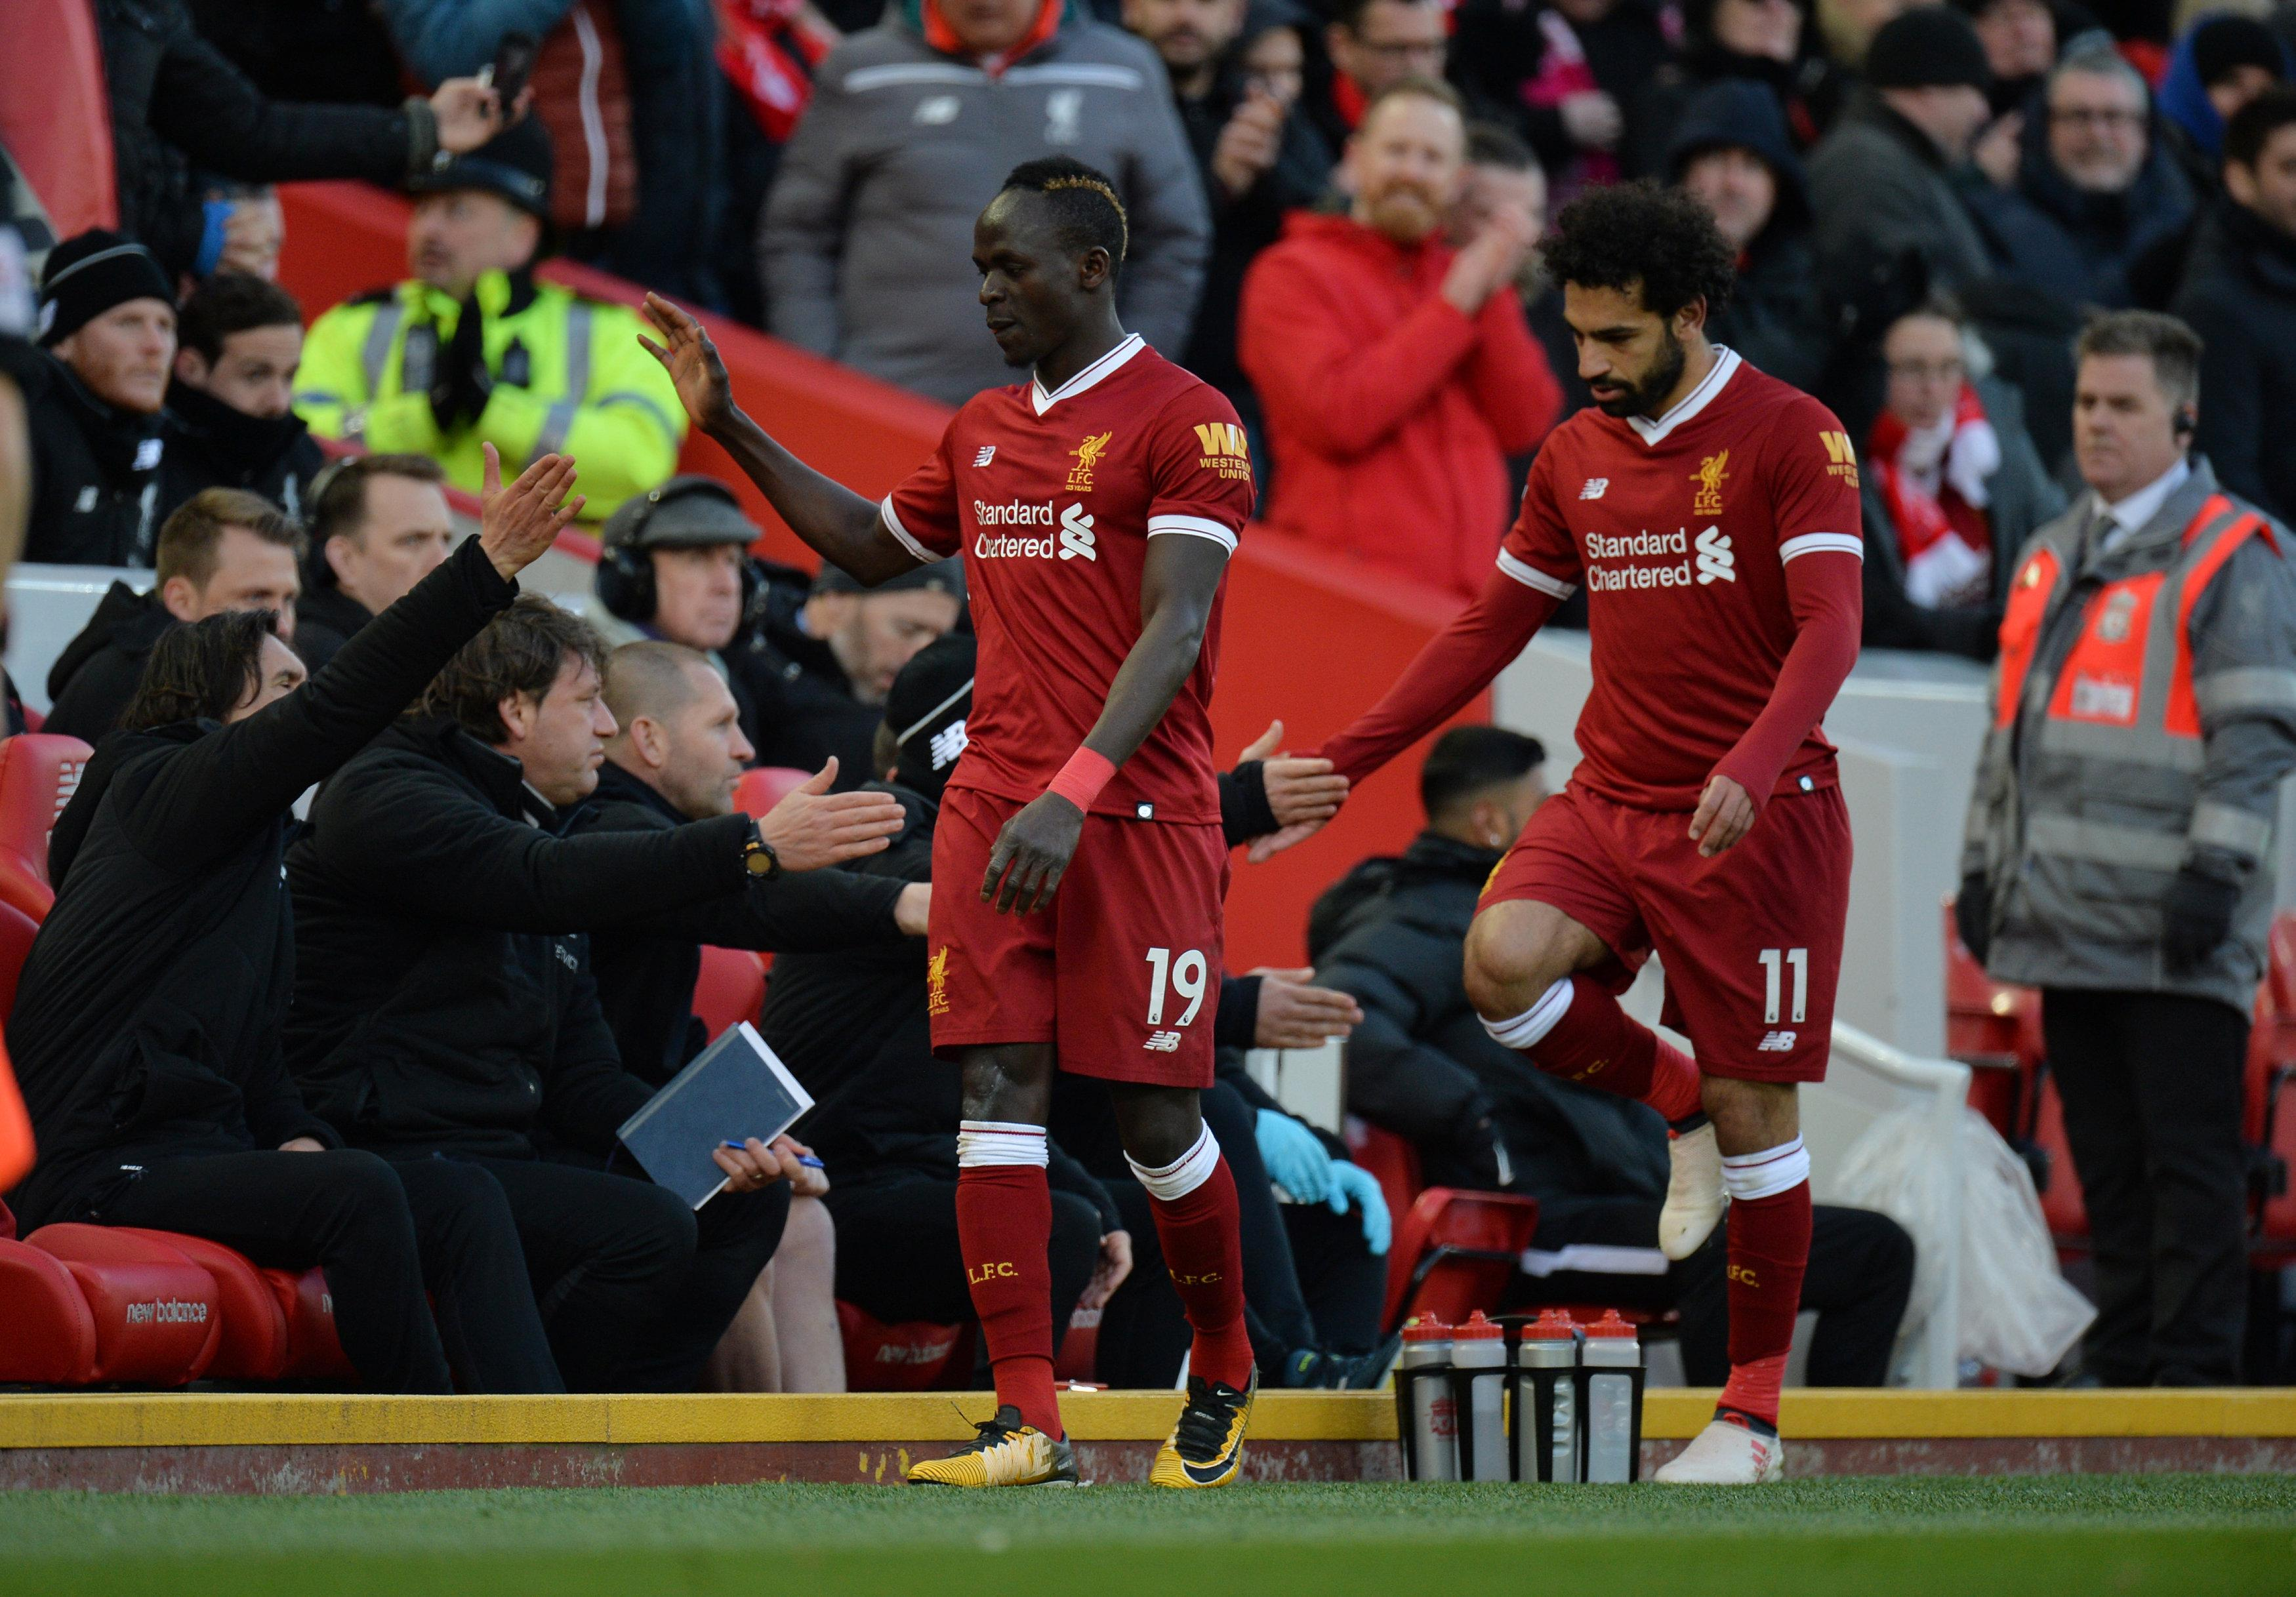 The Mane and Salah double act returned eight points each